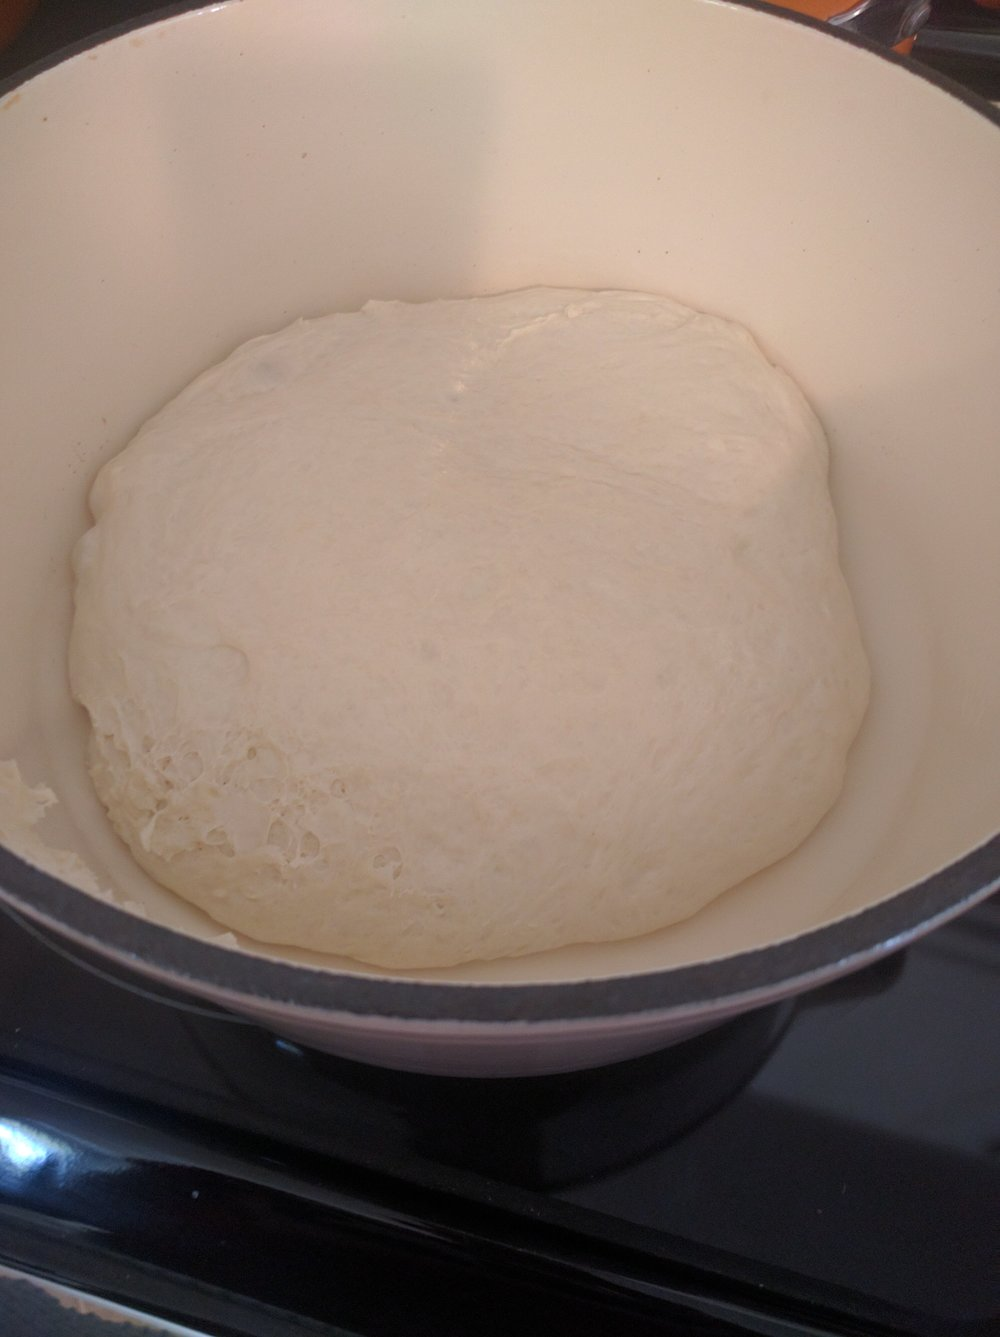 Goodbye dough ball, hello oven!